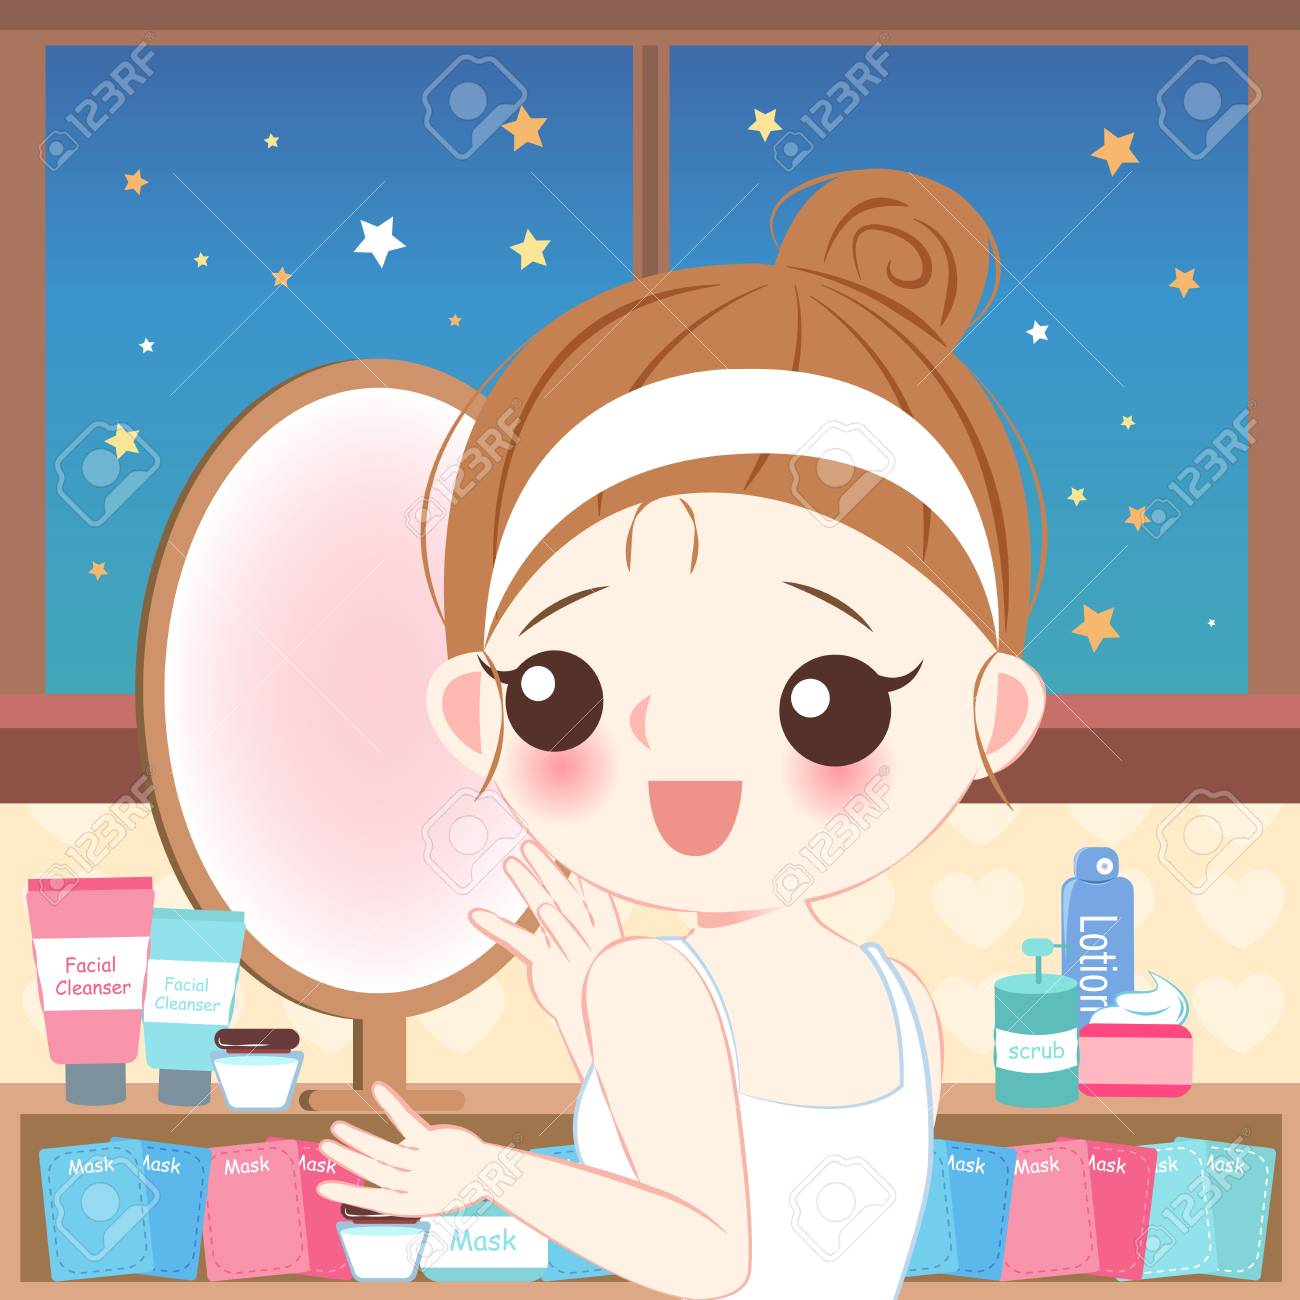 Cute Cartoon Skin Care Woman With Beauty Concept Royalty Free Cliparts Vectors And Stock Illustration Image 115089537